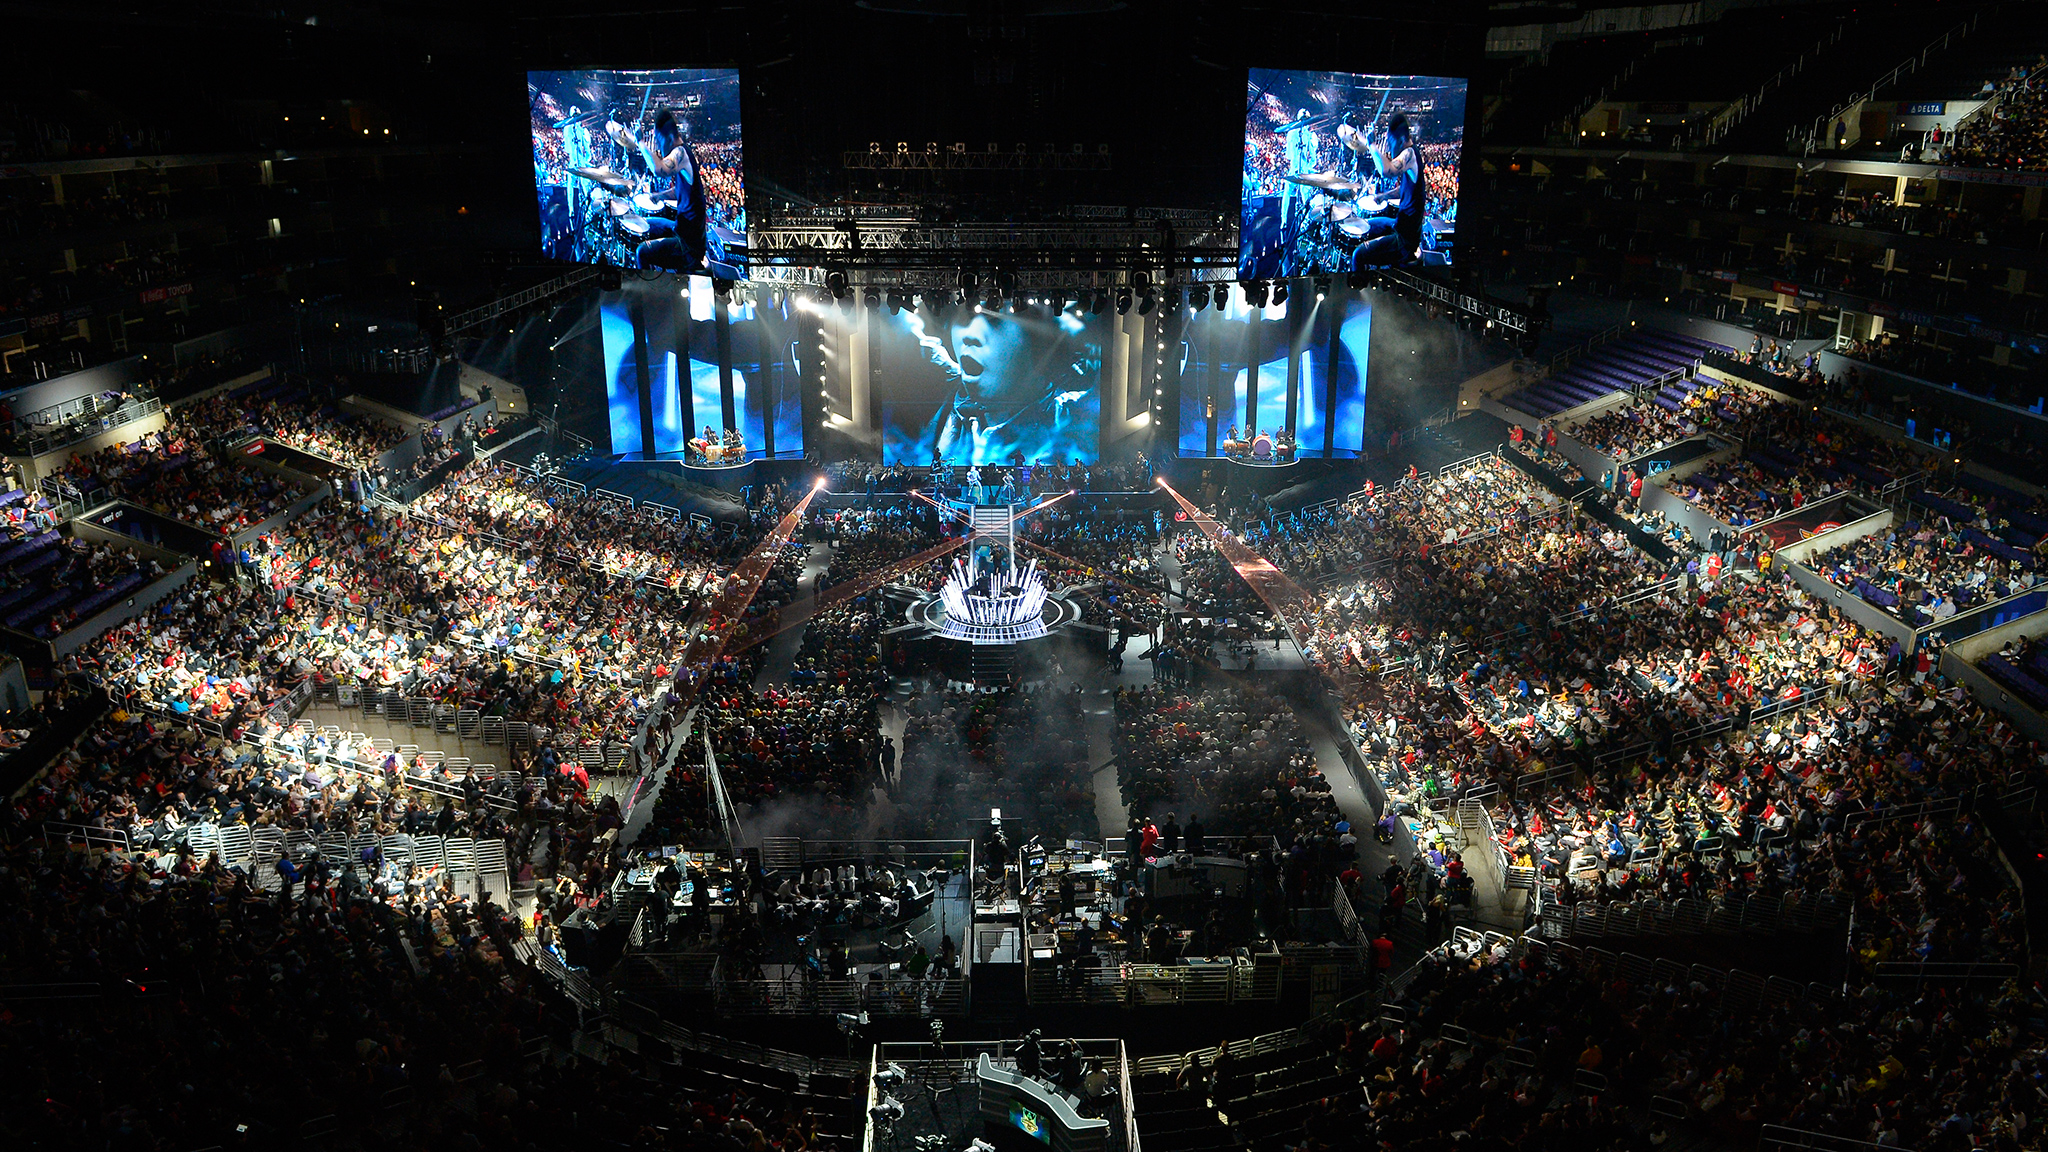 Fans watch the opening ceremony at the League of Legends Season 3 World Championship final between South Korea's SK Telecom T1 and China's Royal Club in October 2013 at the Staples Center in Los Angeles. The event sold out in less than a day. While video game tournaments have been sellouts in other countries, most notably South Korea, the Staples Center event last year brought professional gaming more into the American mainstream.